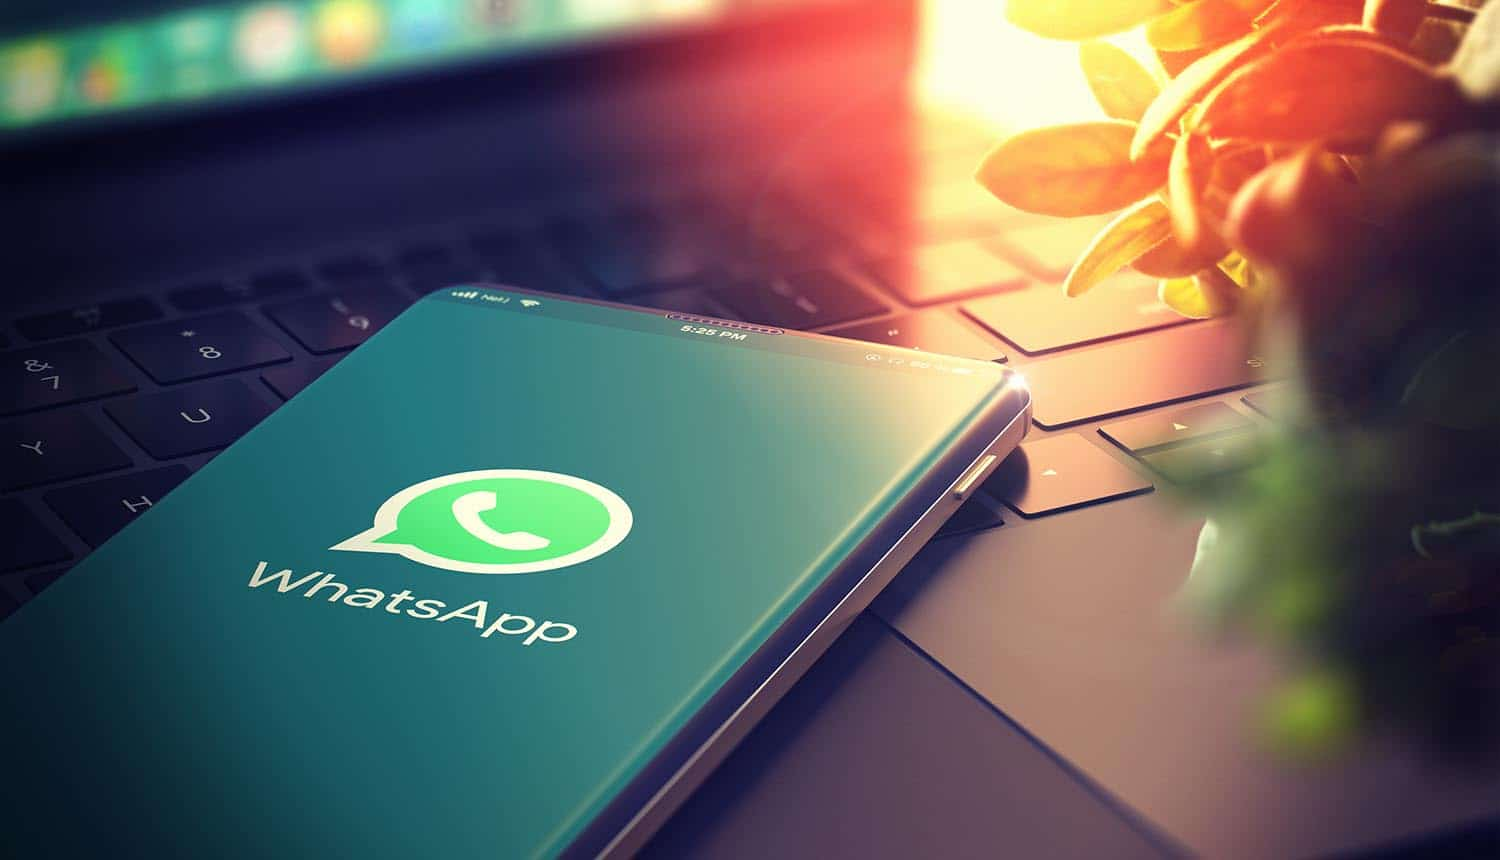 whatsapp video and voice call support